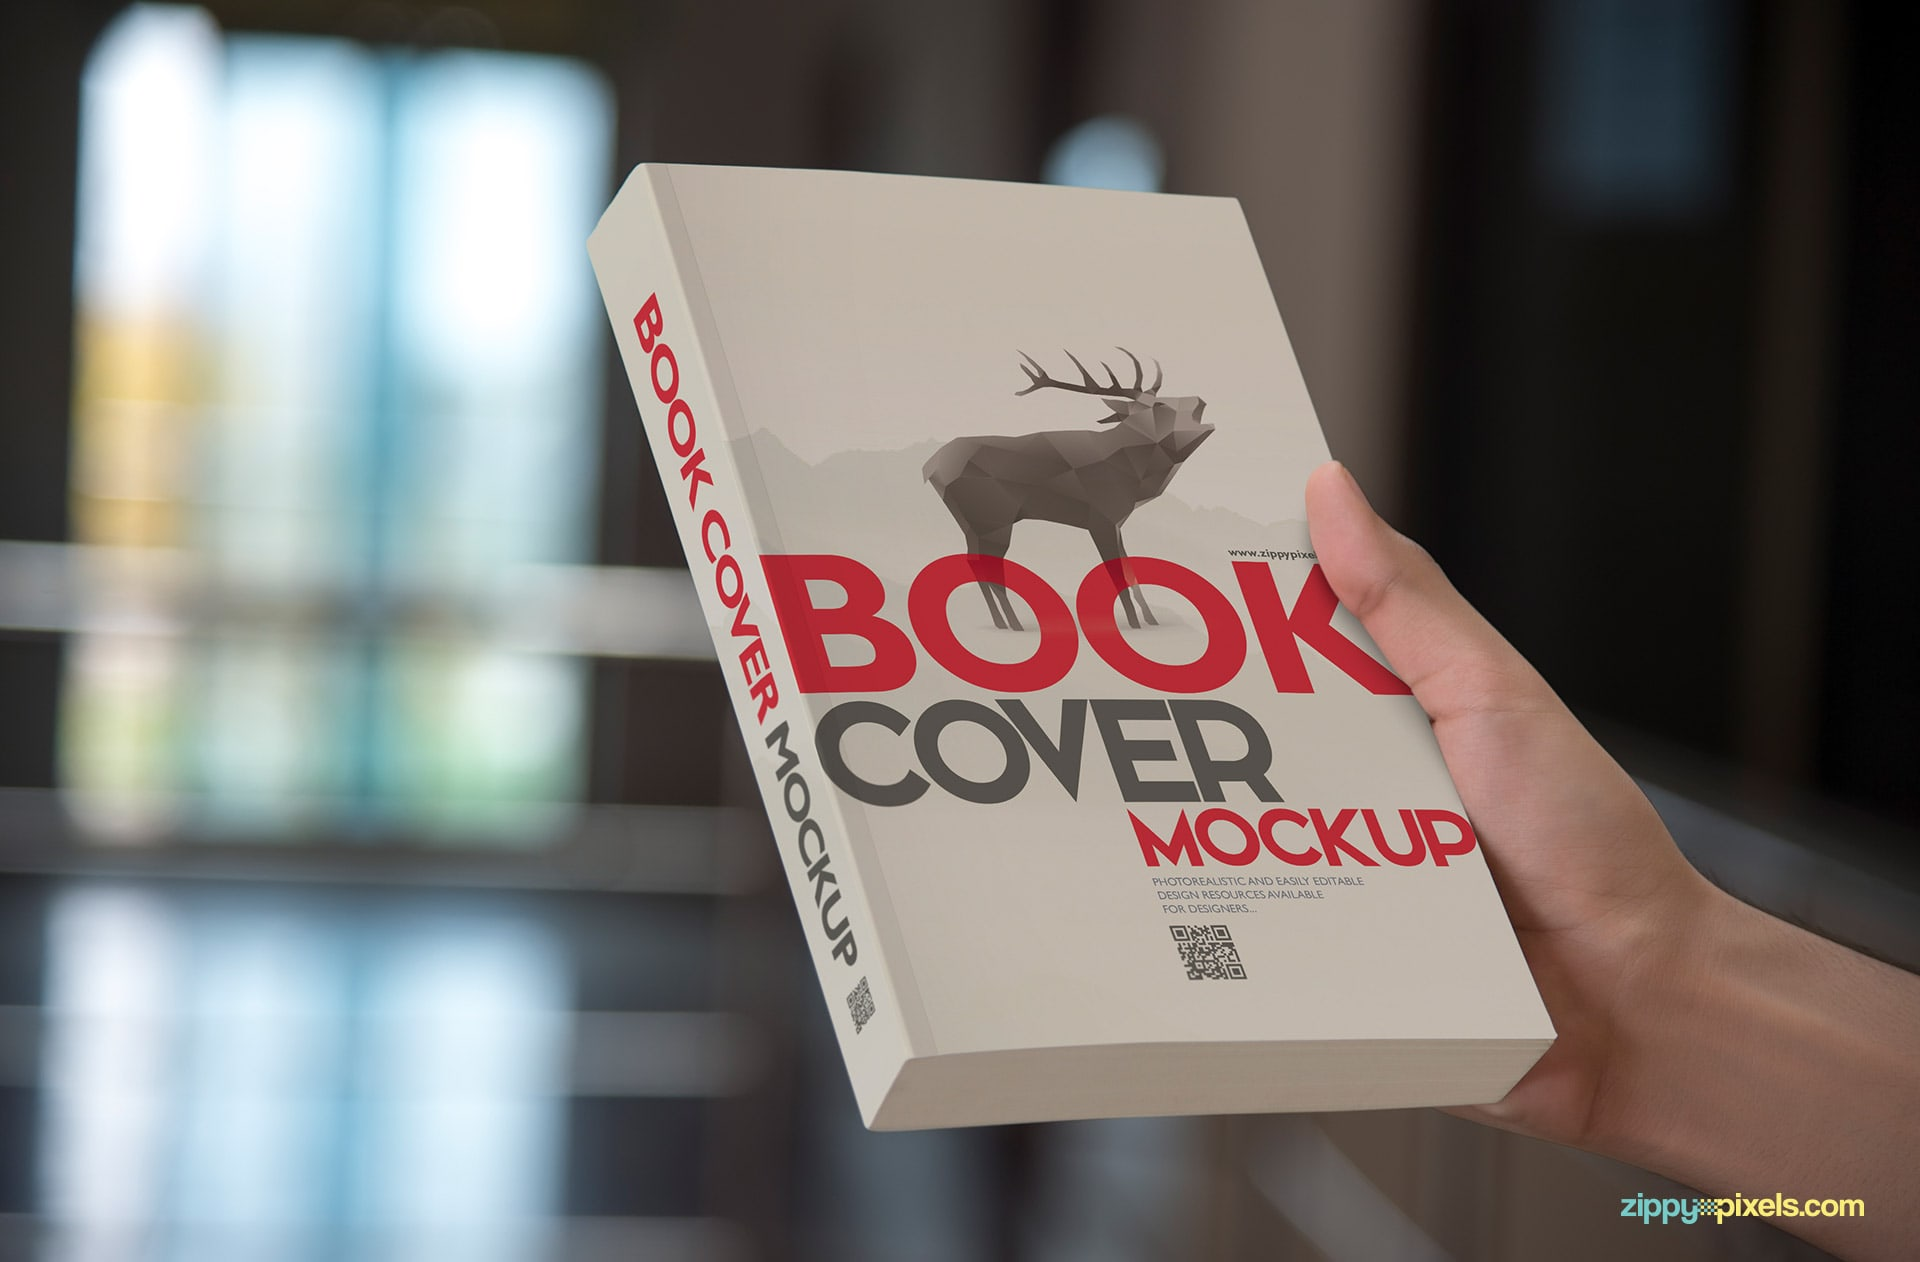 Photorealistic paperback mockup showcasing book held vertically to show front cover design